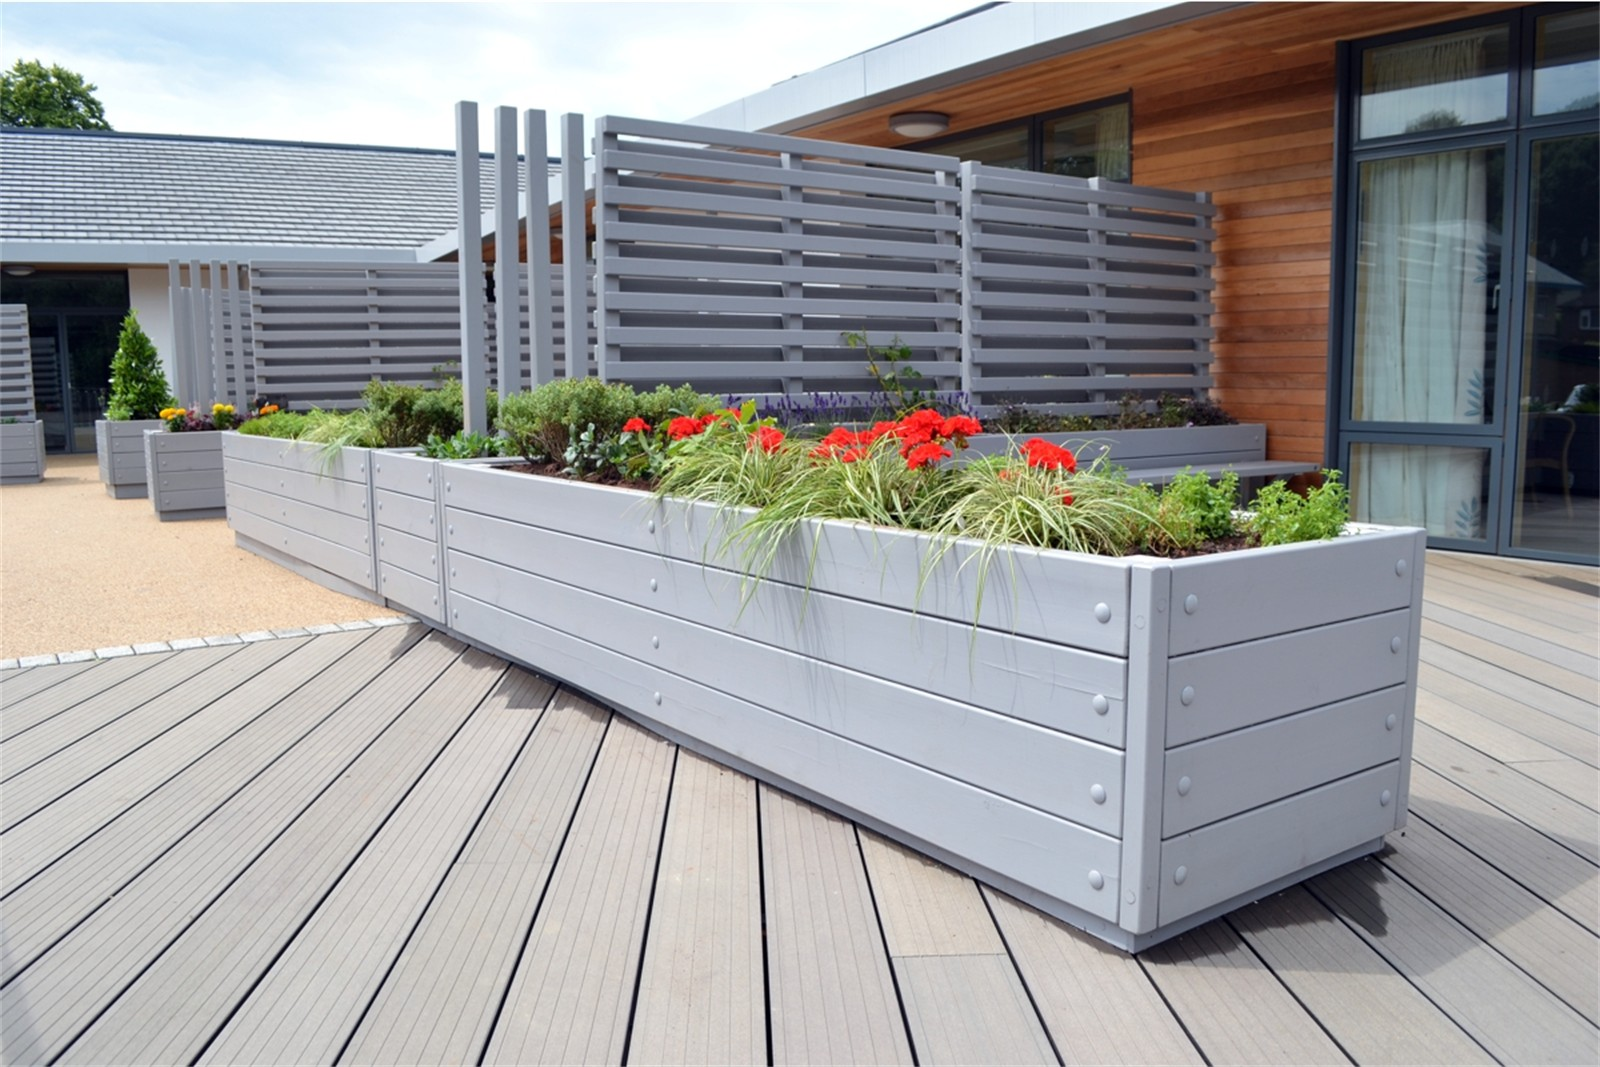 41pgr09 - Large Grenadier planters with slatted screens